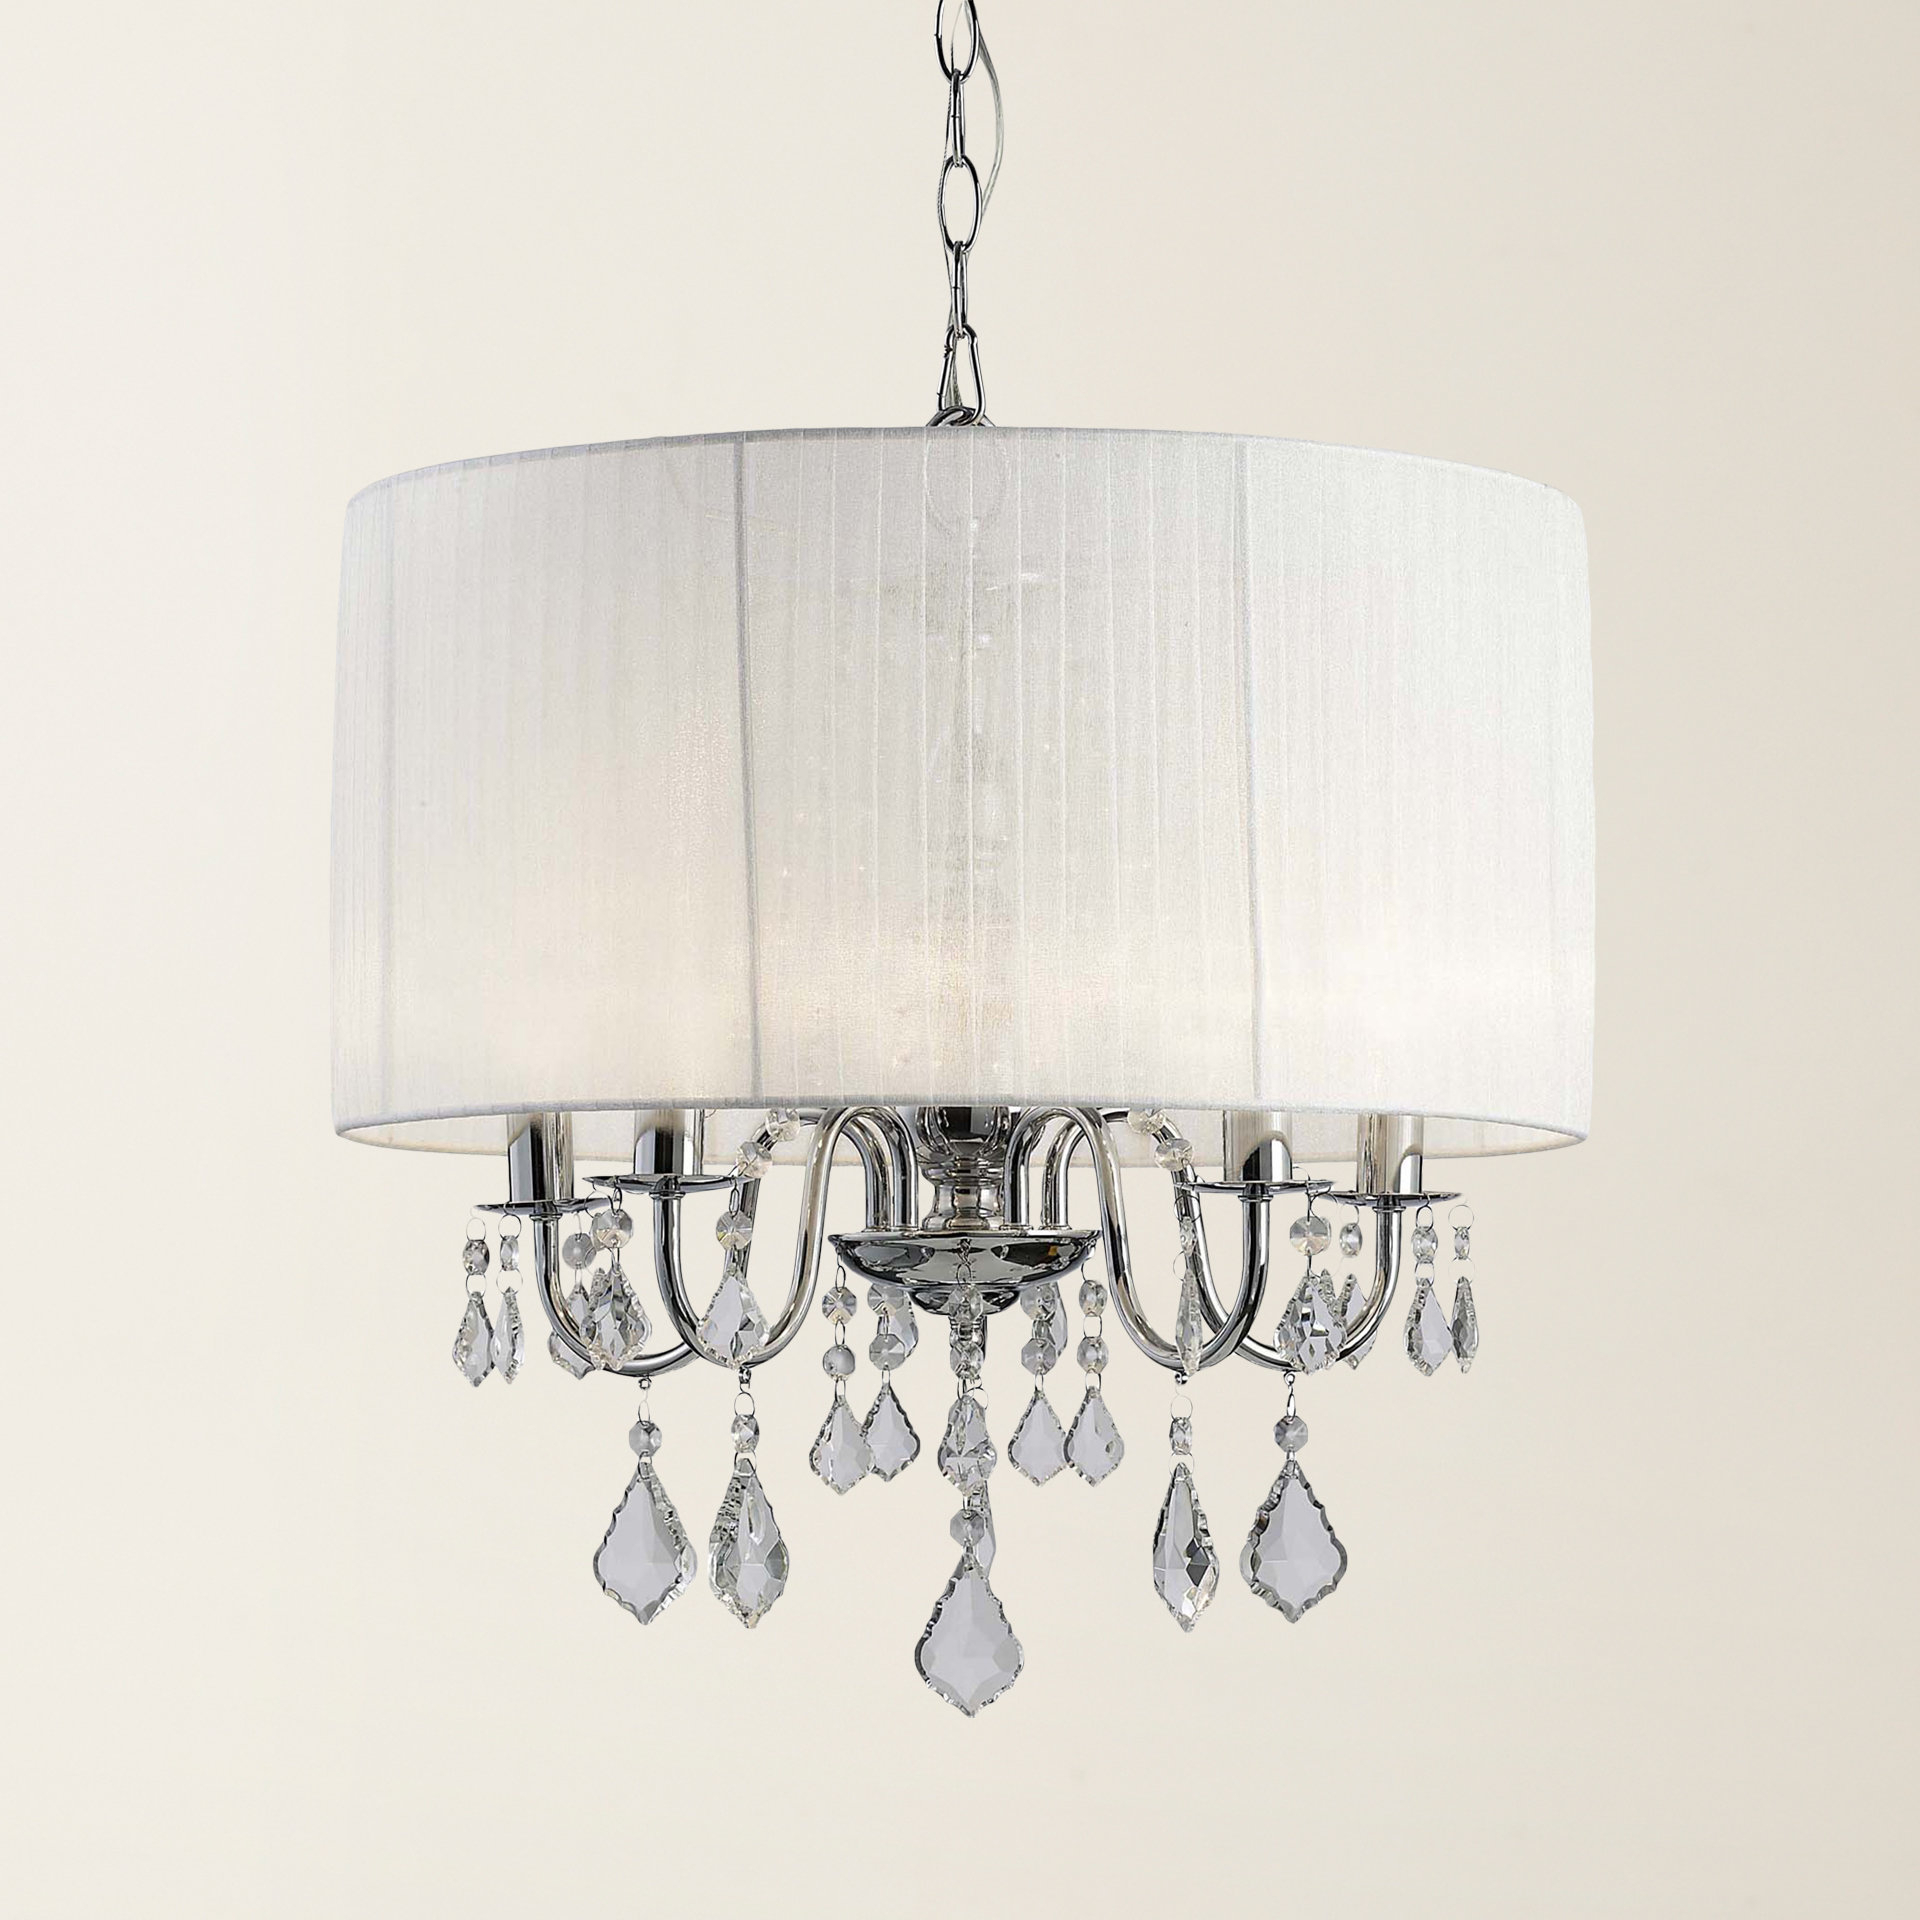 Lindsey 4 Light Drum Chandeliers Within Fashionable Buster 5 Light Drum Chandelier (View 5 of 20)